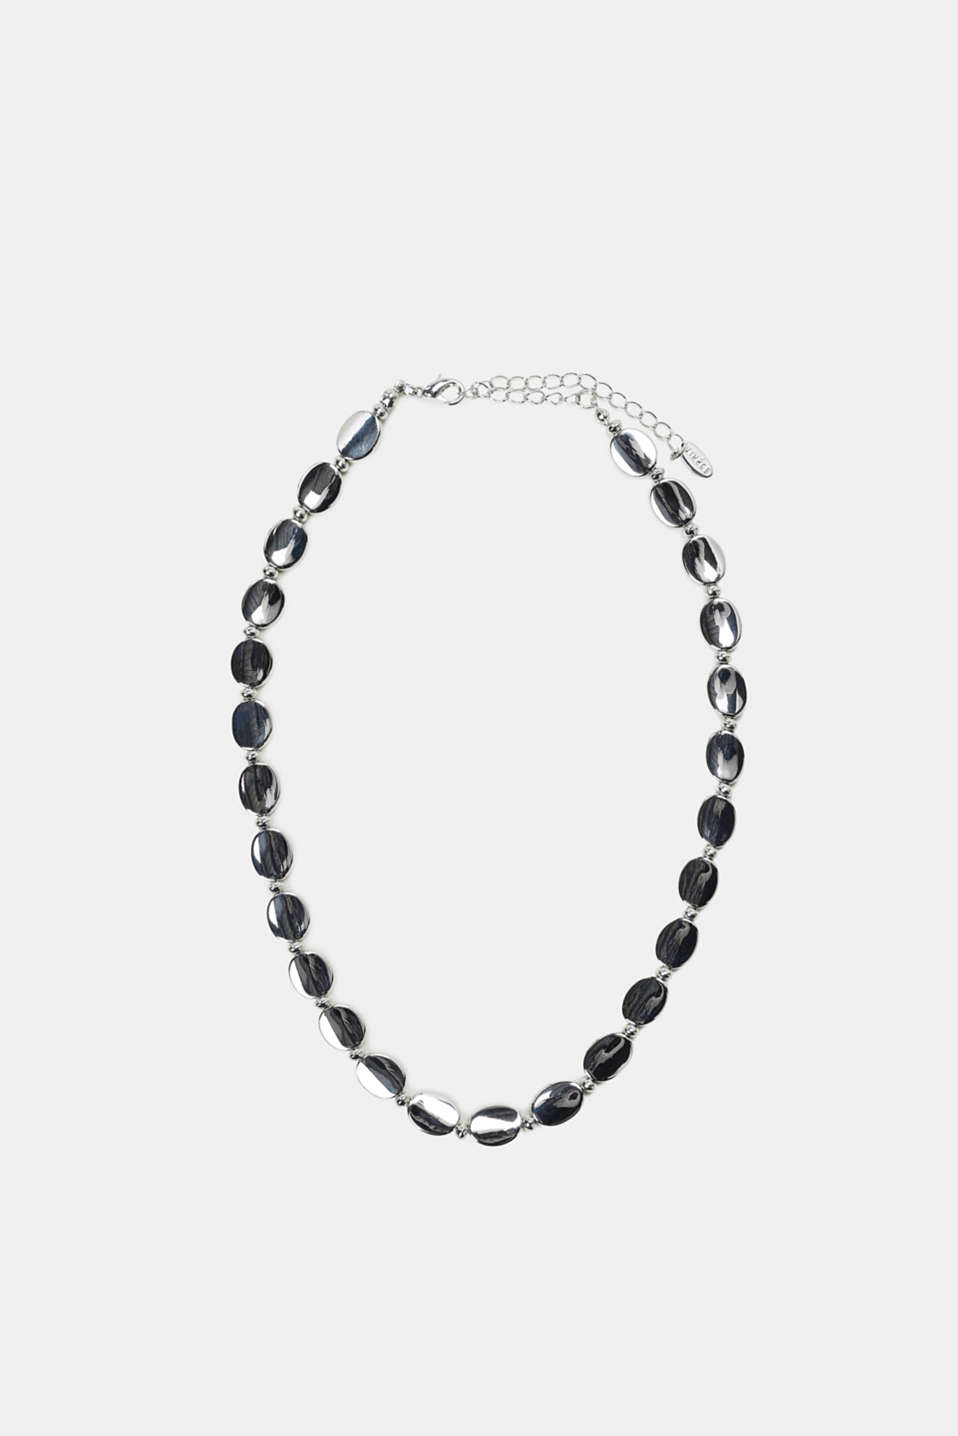 Esprit - Necklace made of highly polished metal links